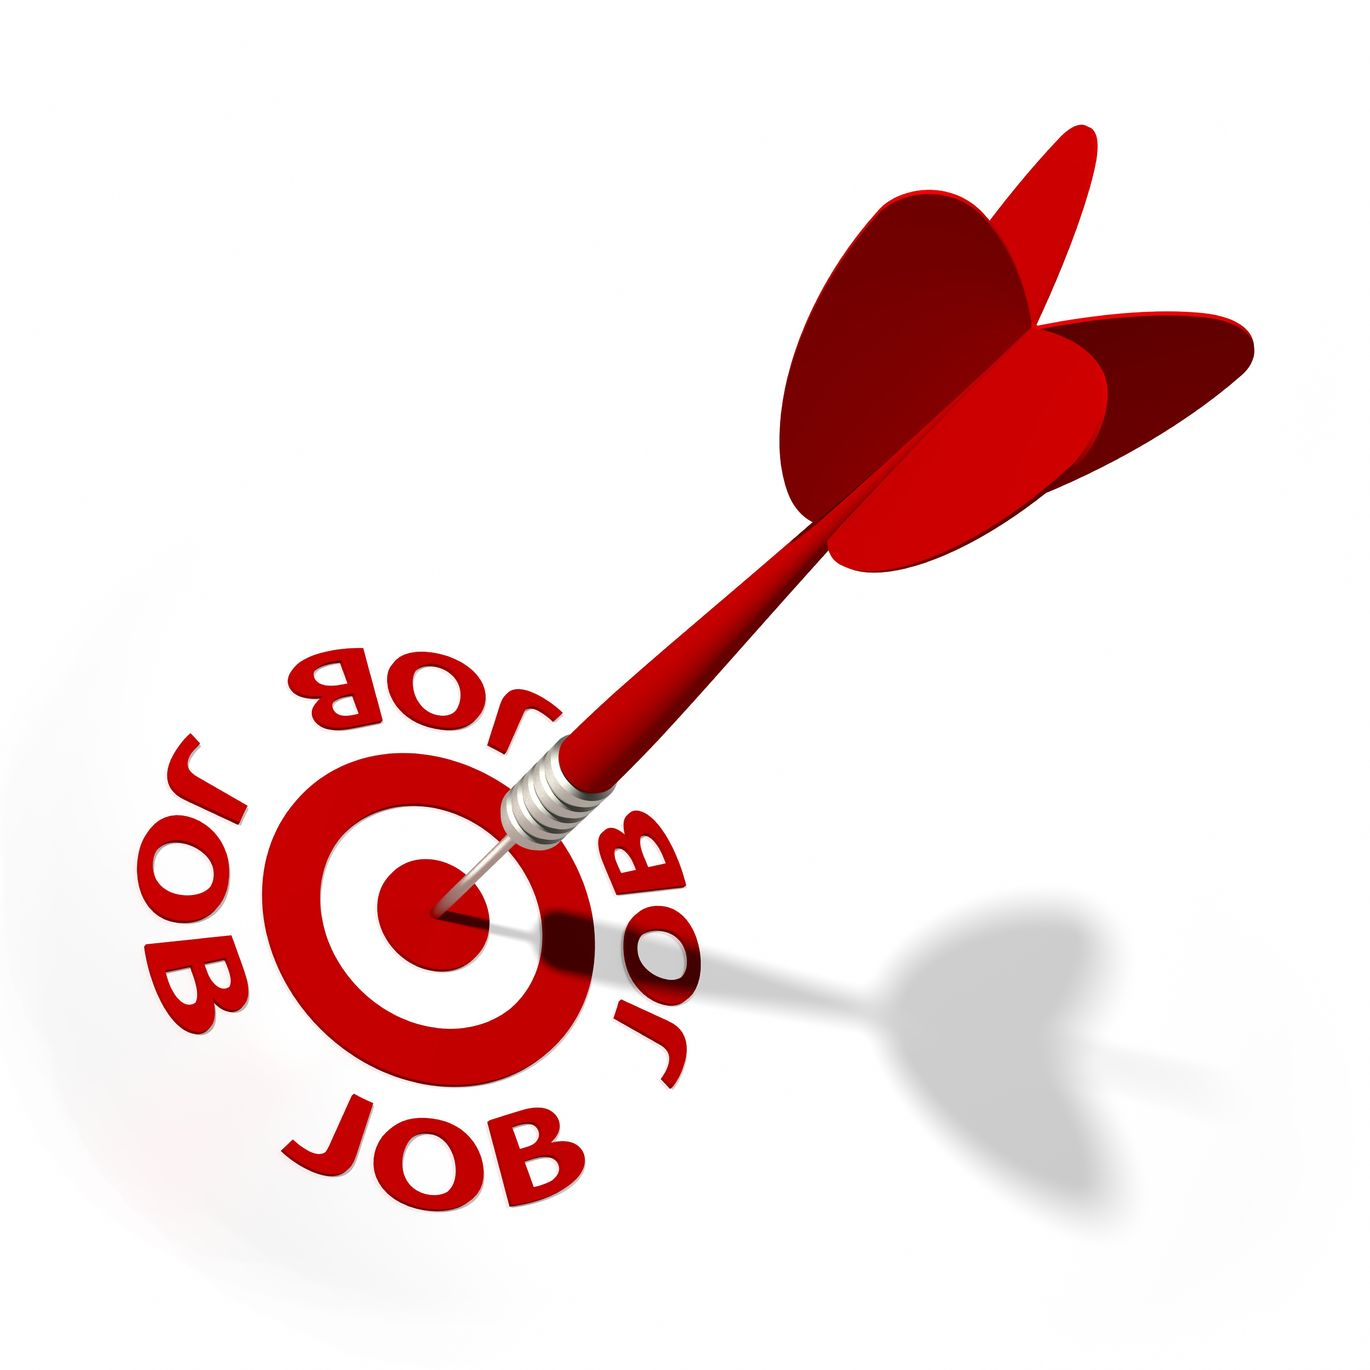 job search Search for your next job from 48635 live vacancies, or upload your cv now and let recruiters find you.